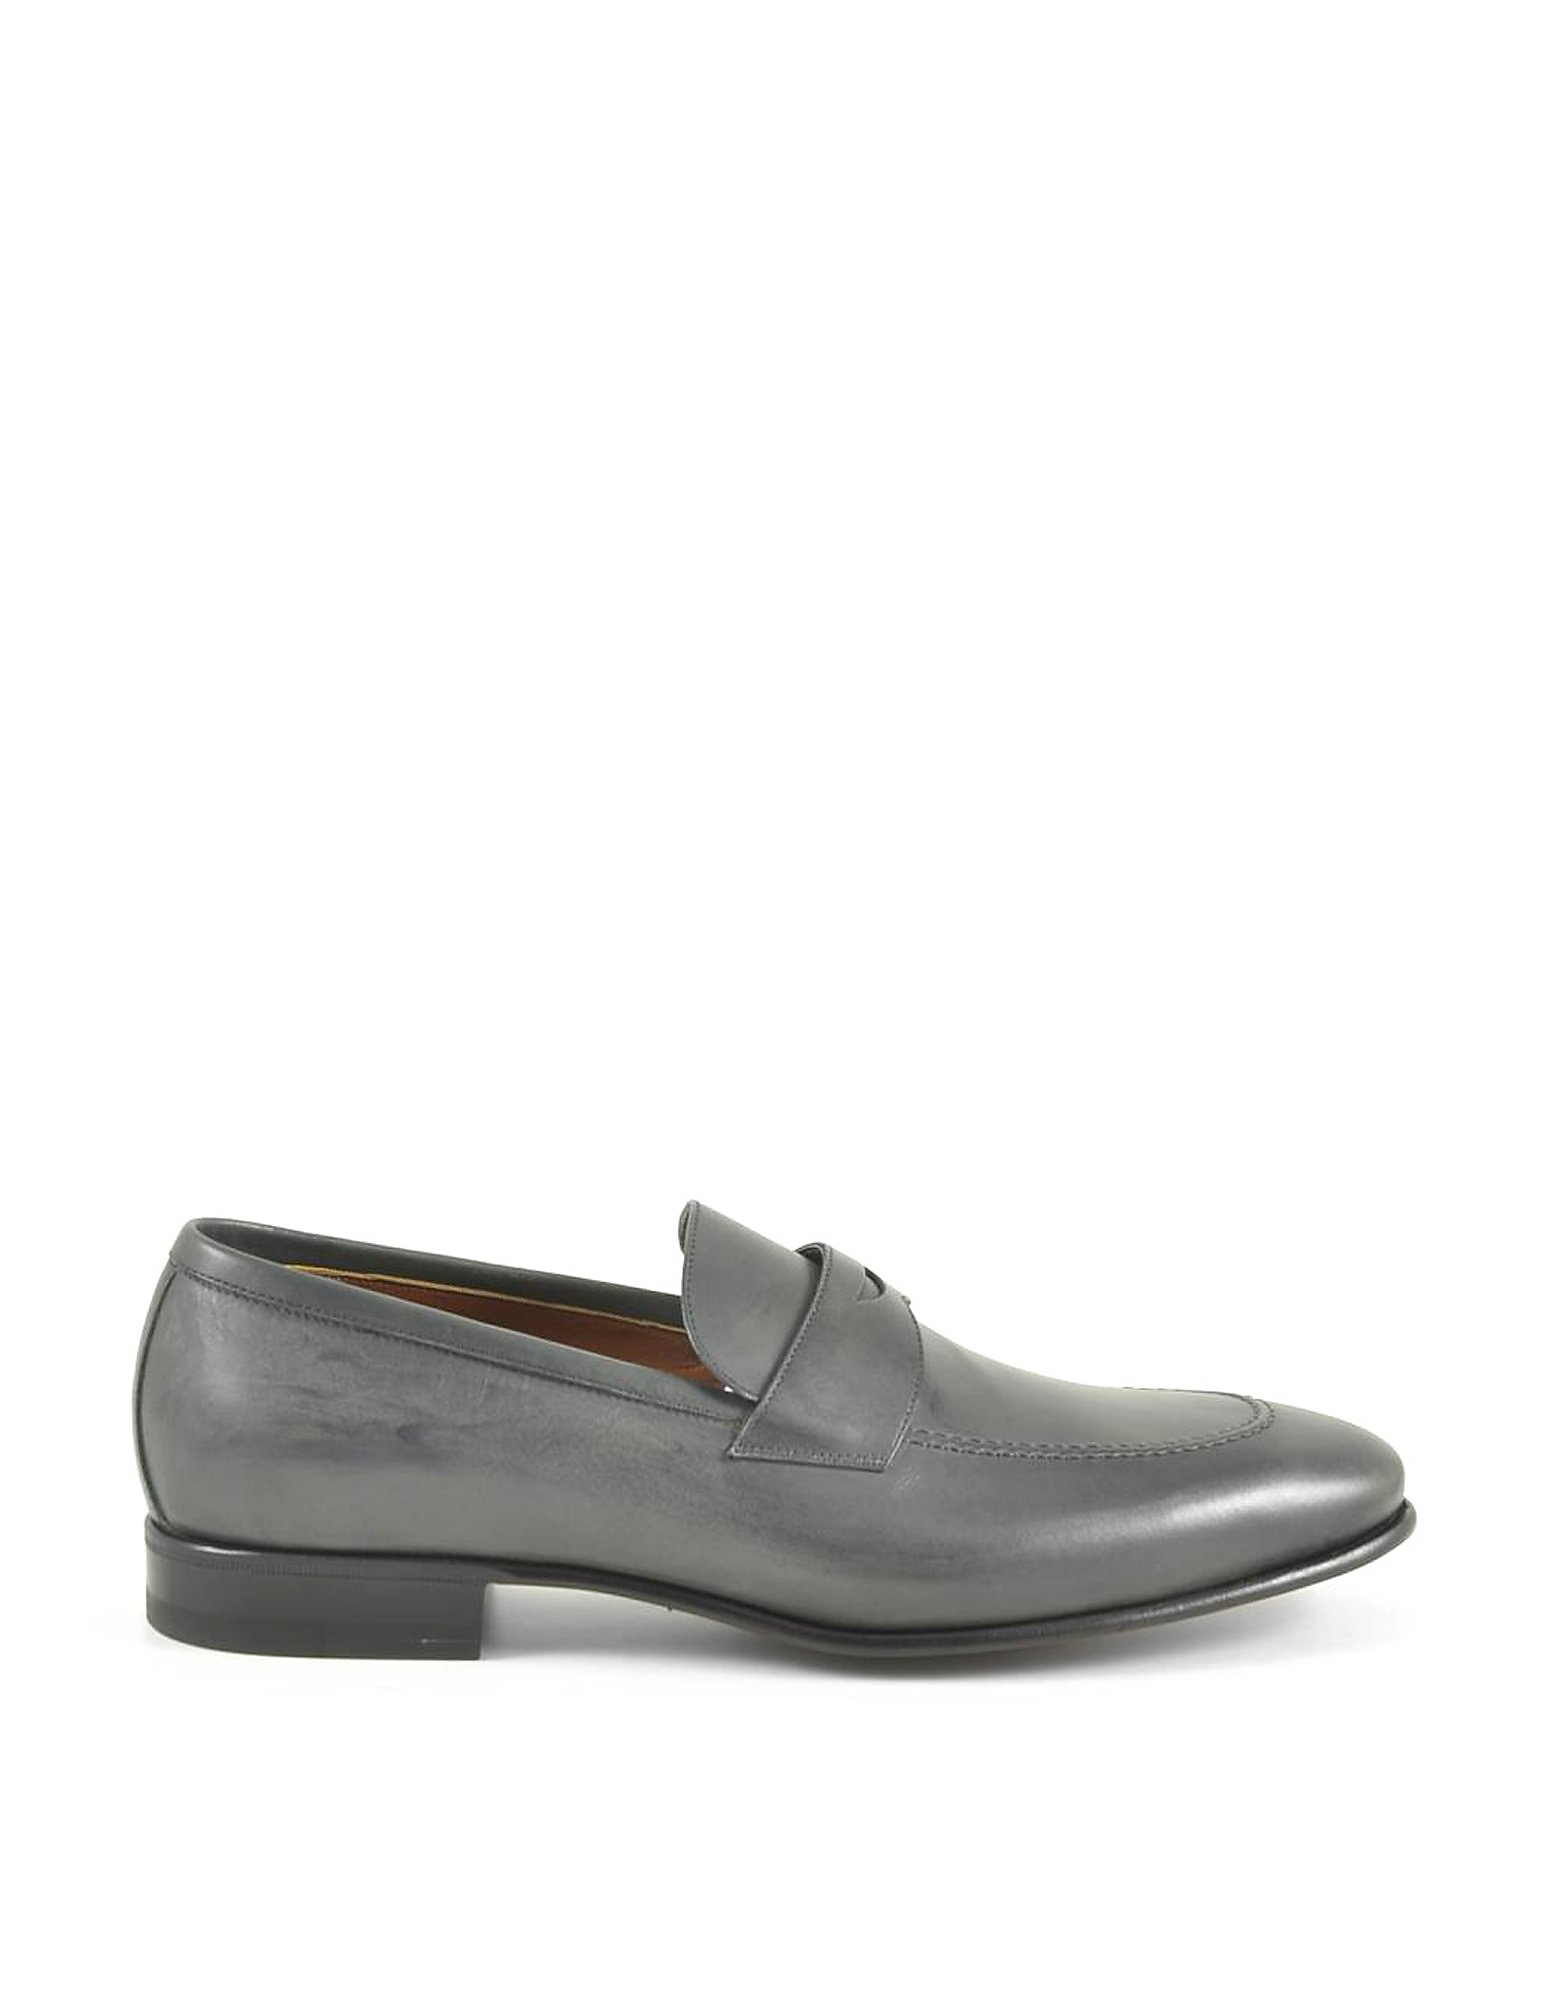 A.Testoni Designer Shoes, Men's Gray Loafer Shoes